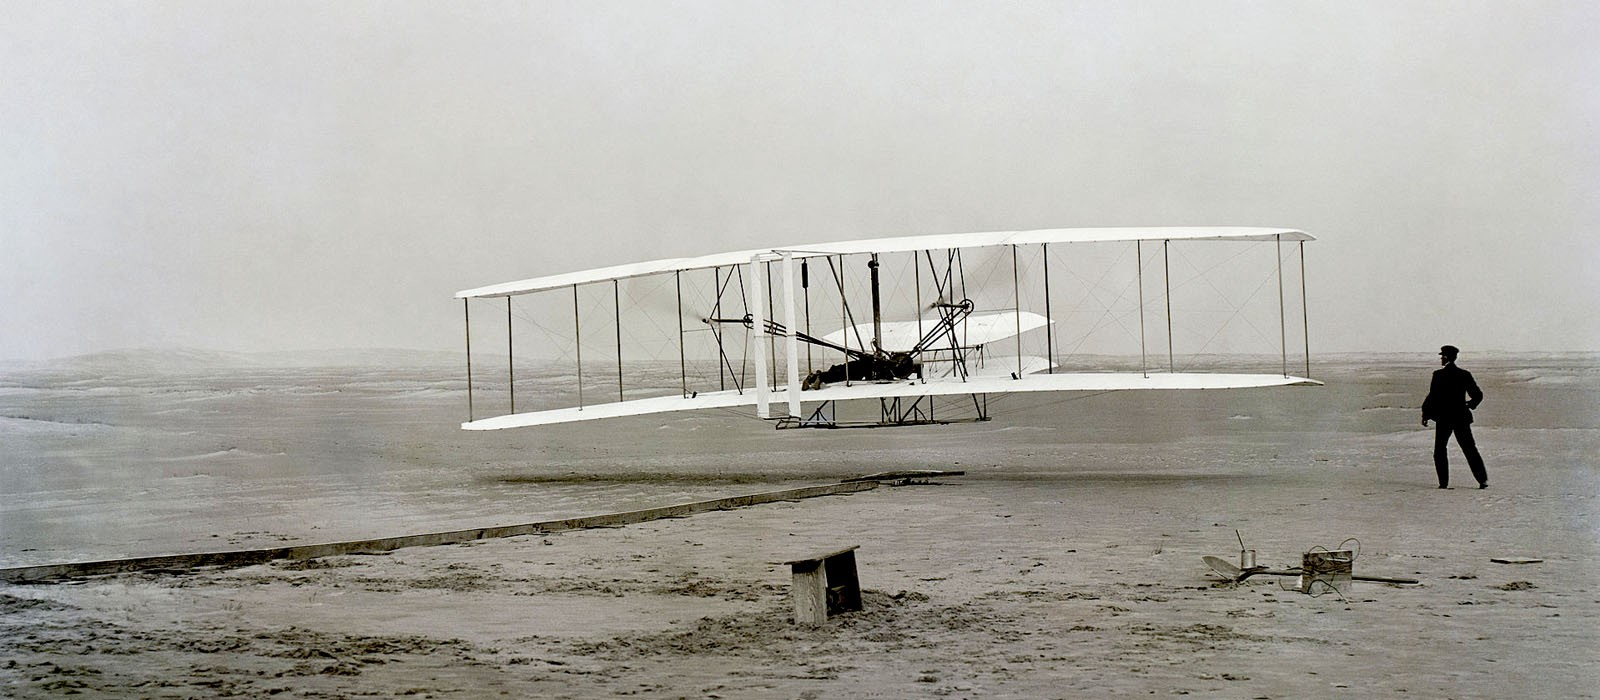 5 Lessons From the Wright Brothers and the Power of Purpose